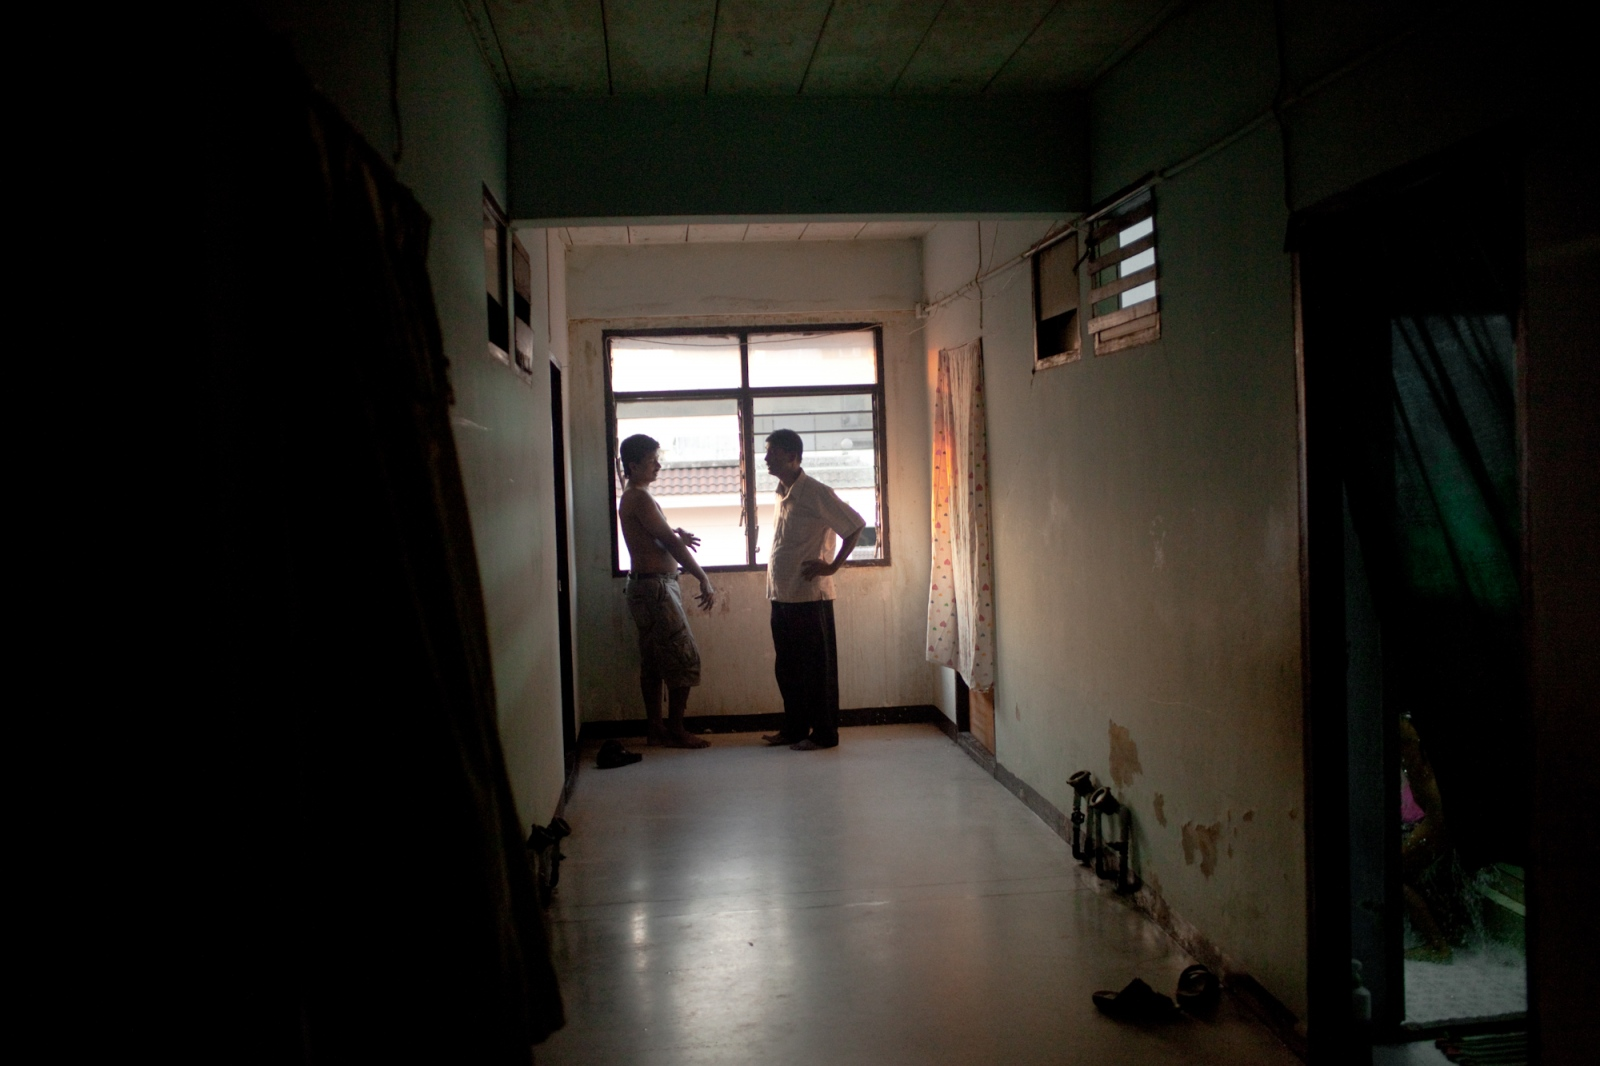 Two men from Sri Lanka stand near a window in the hallway of one of the main buildings, that house hundreds of asylum-seekers. Apr. 2015